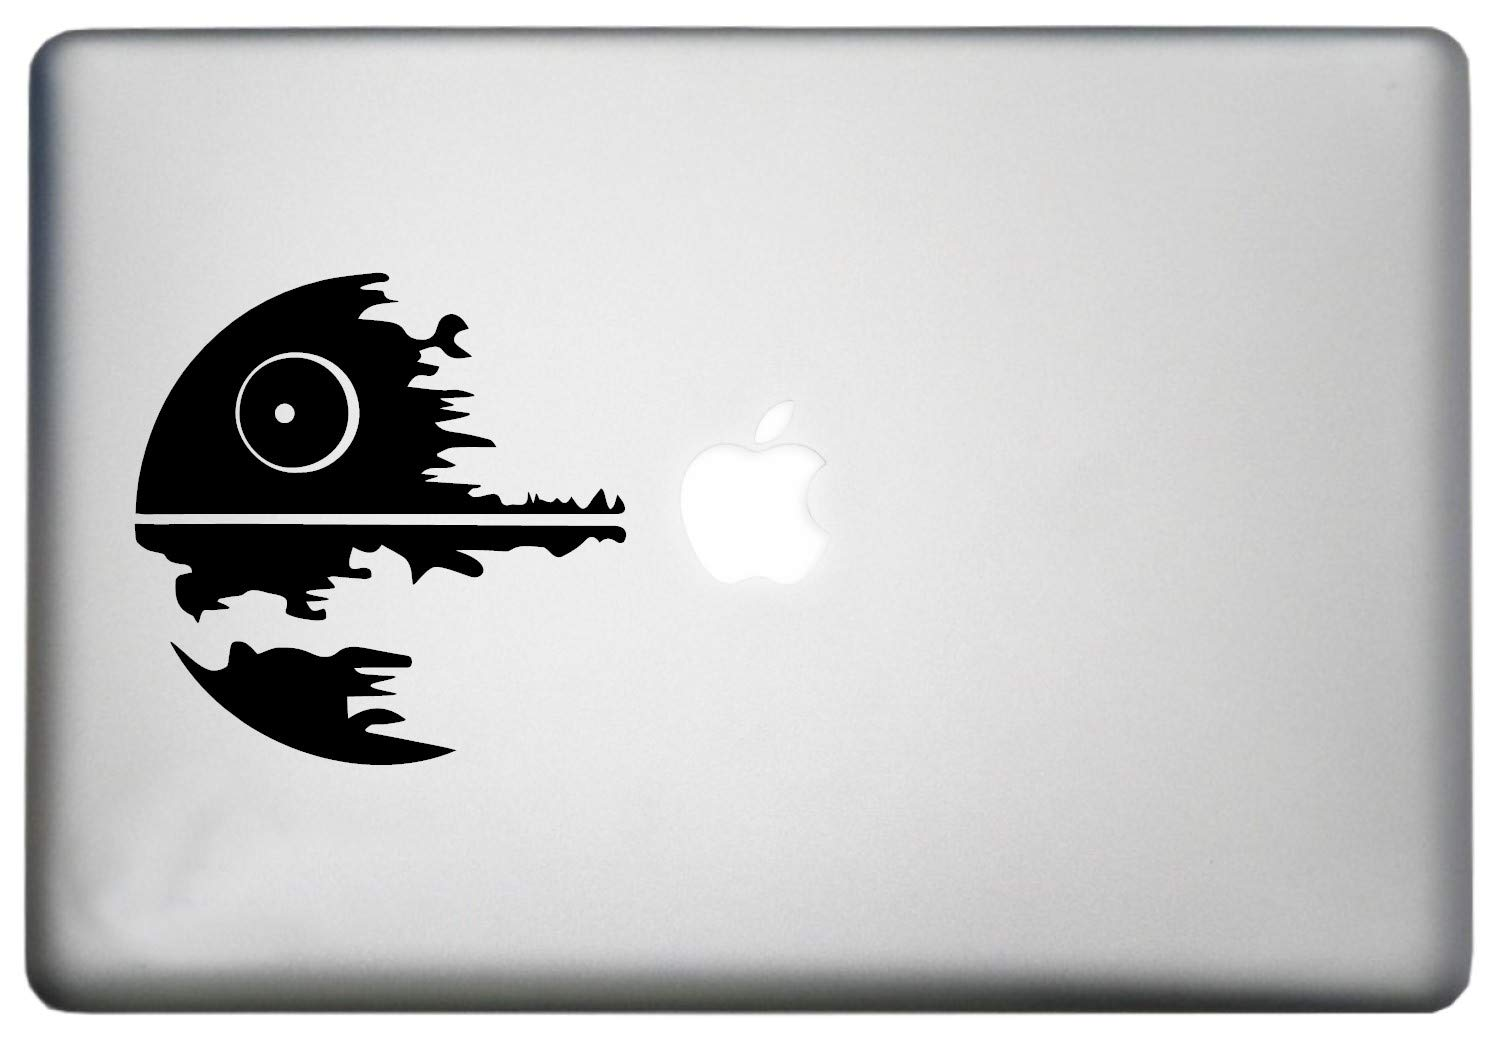 Death star wars macbook decal sticker is a death star print art vinyl decal laptop sizes 11 12 13 and 15 inch also looks good with death star poster